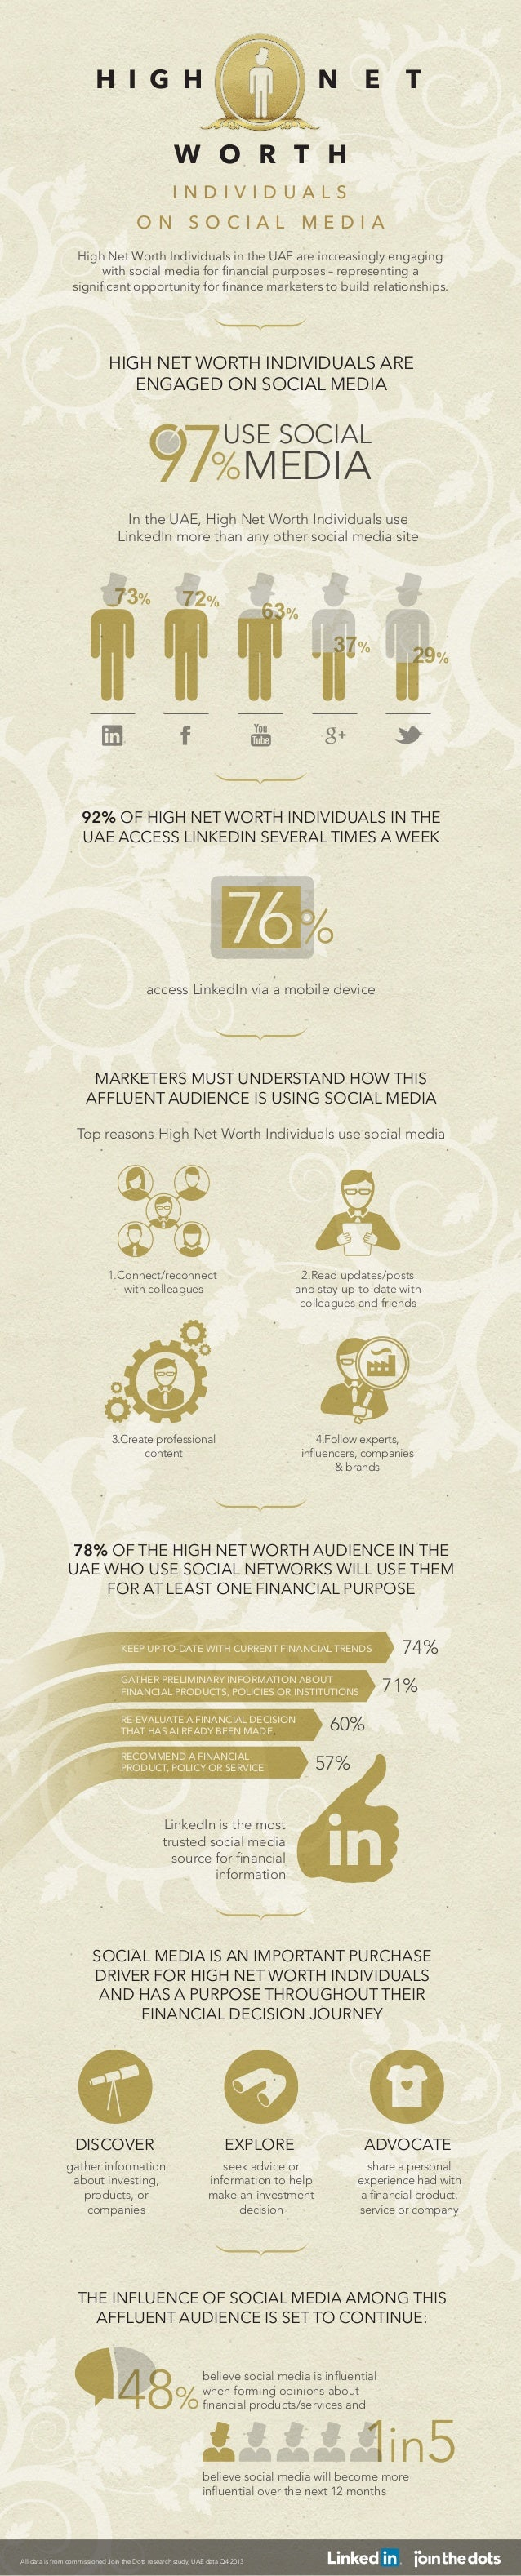 H I G H  N  E  T  W O R T H INDIVIDUALS ON SOCIAL MEDIA High Net Worth Individuals in the UAE are increasingly engaging wi...